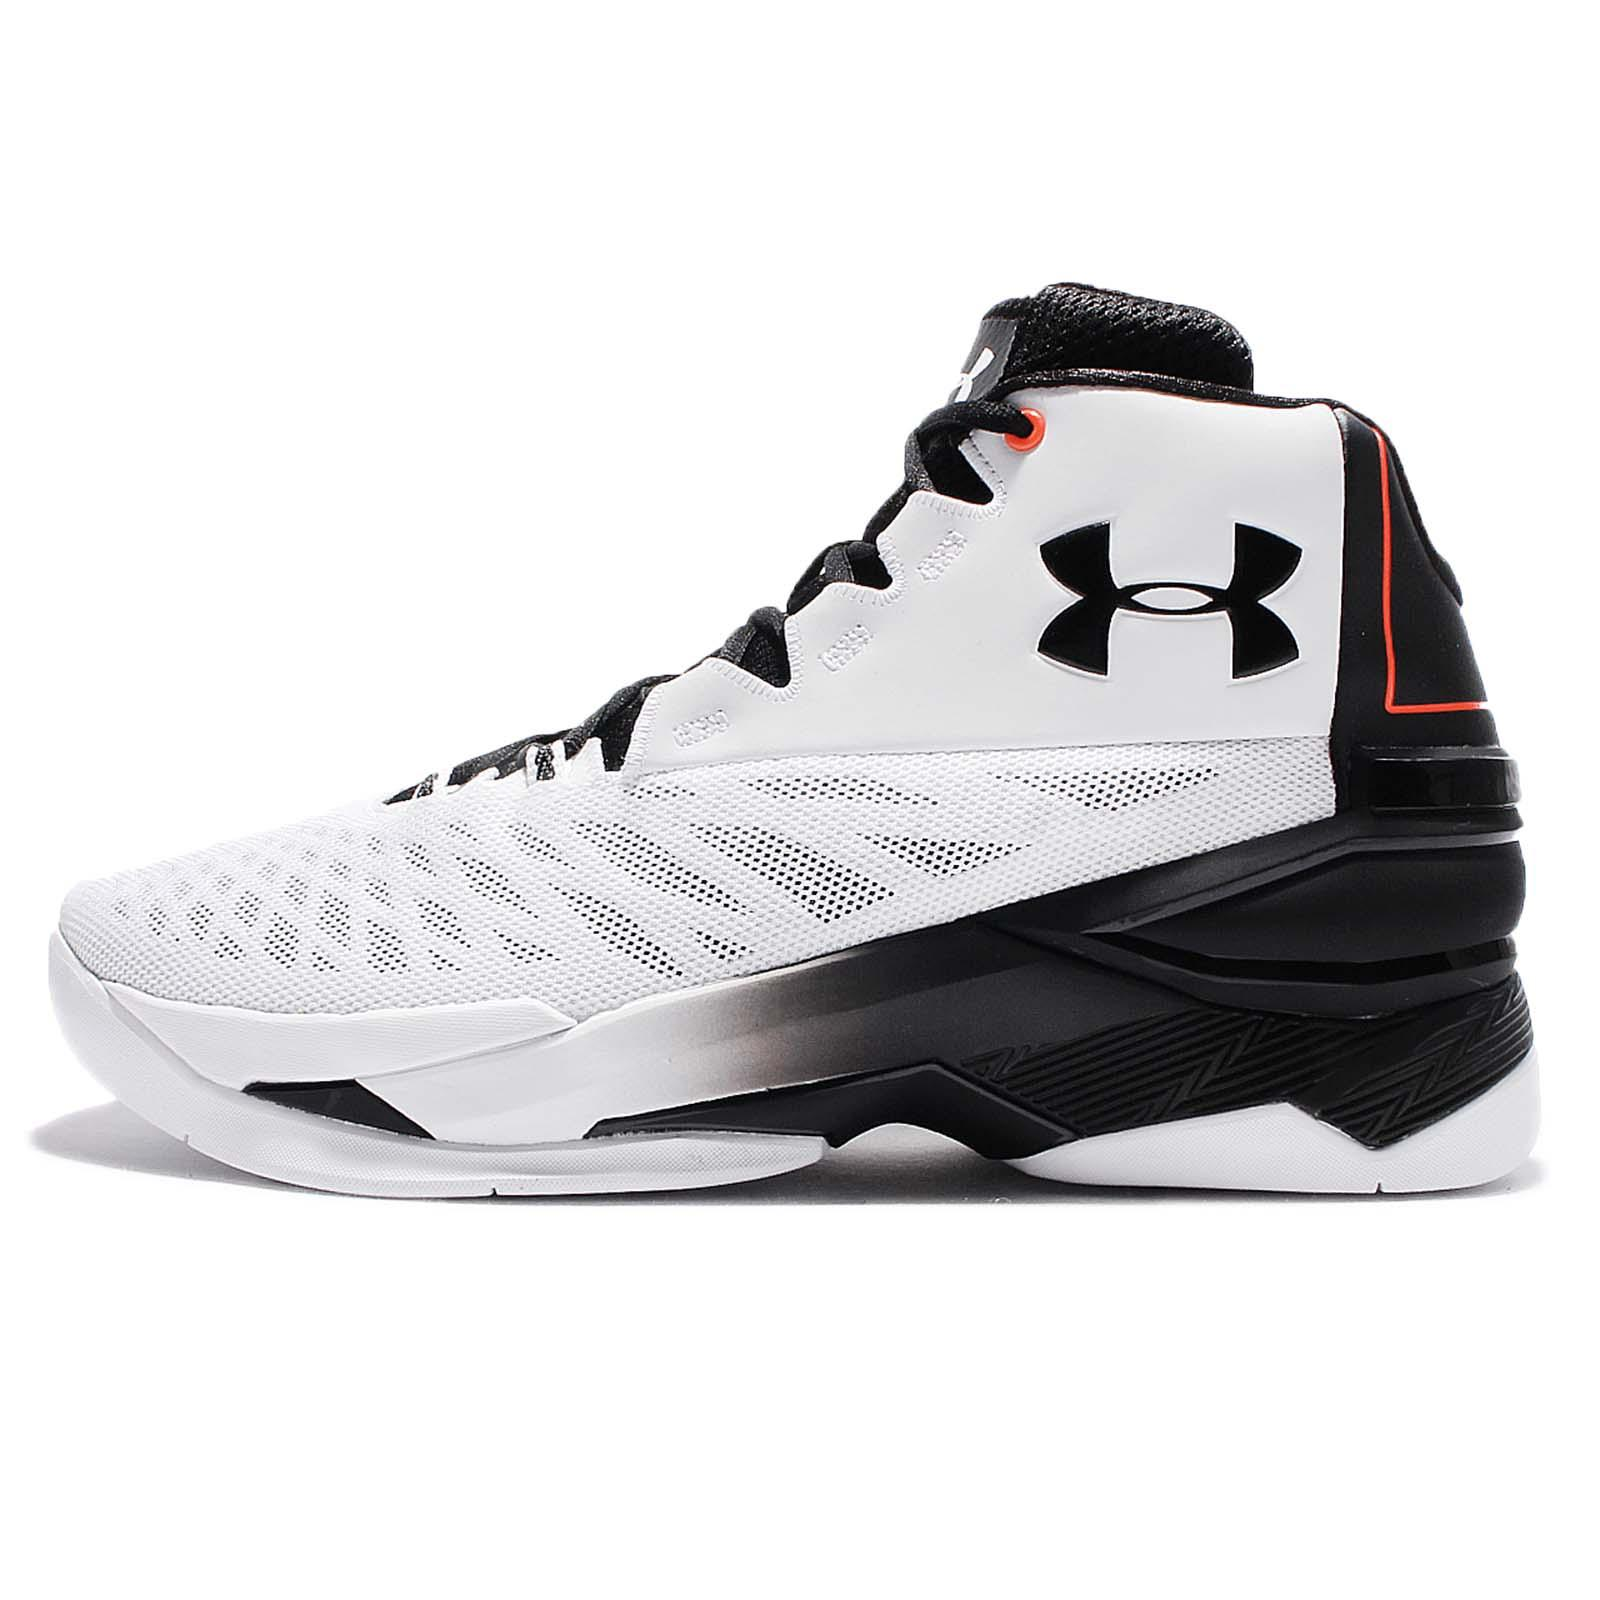 under armour mens basketball shoes. under armour ua longshot white black men basketball shoes sneakers 1286382-101 mens